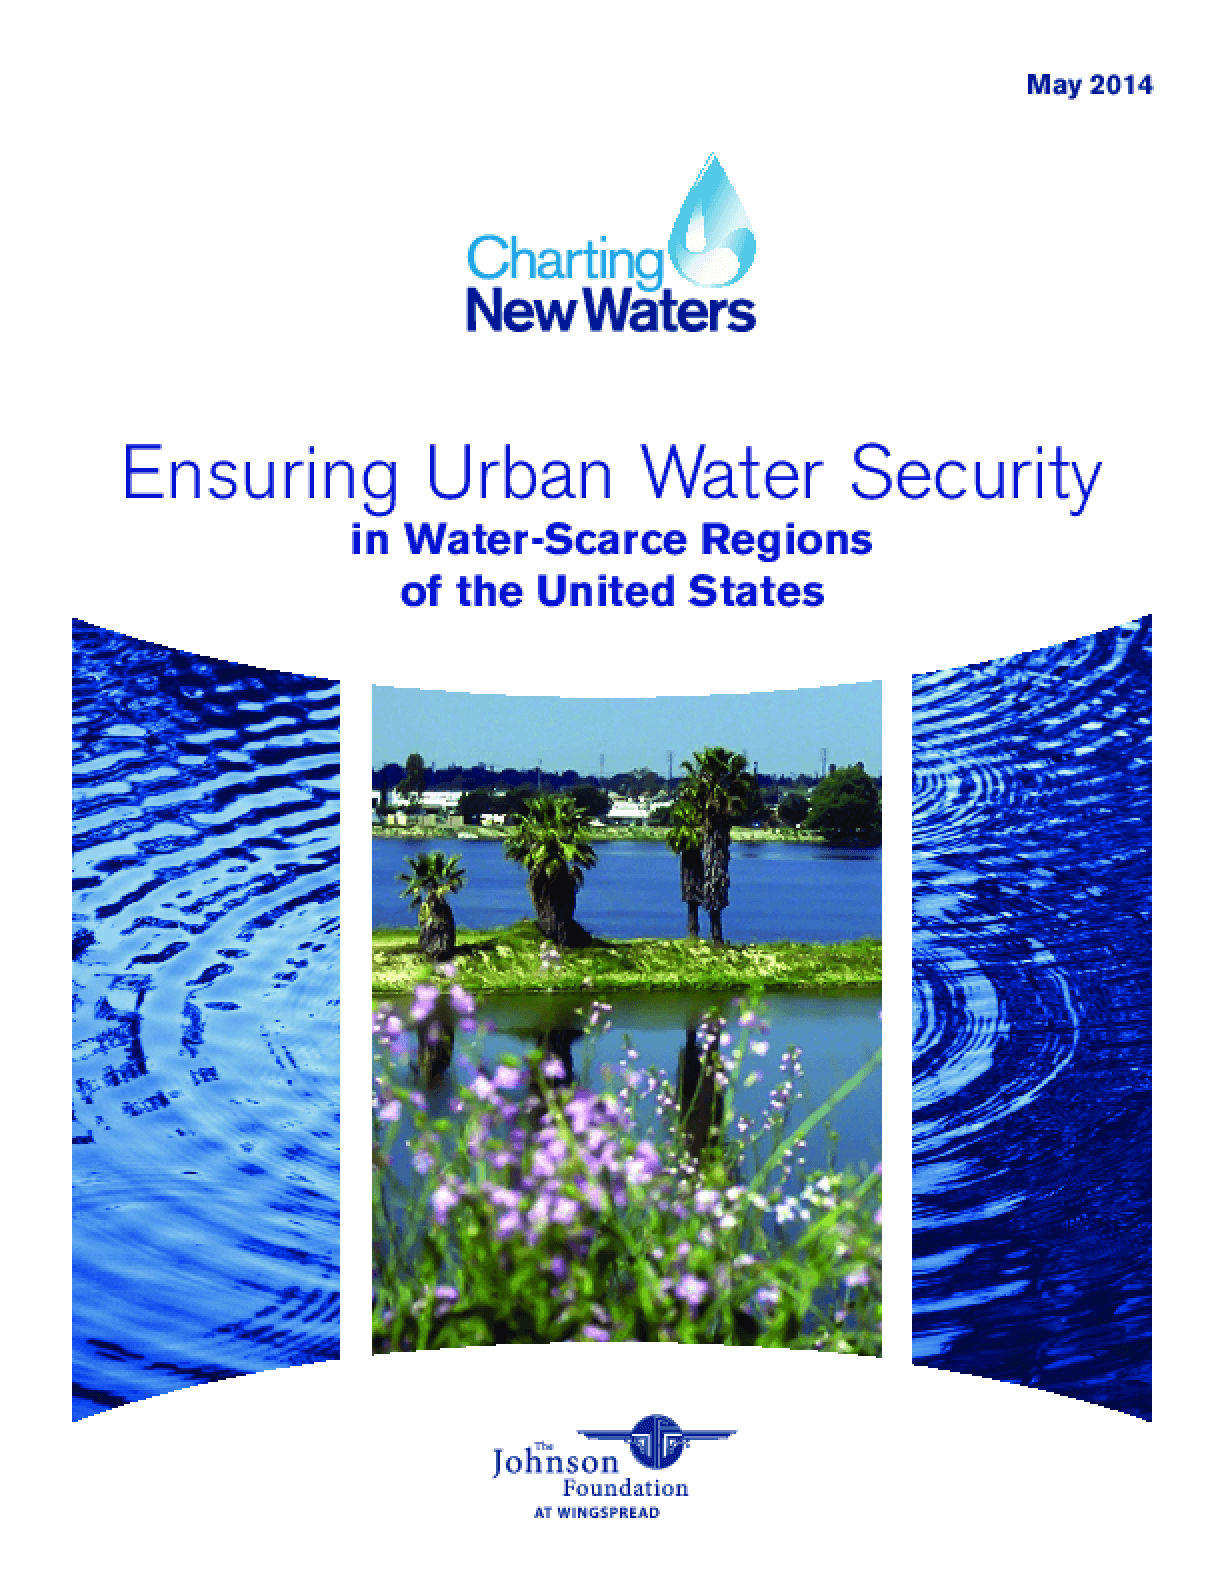 Ensuring Urban Water Security in Water-Scarce Regions of the United States